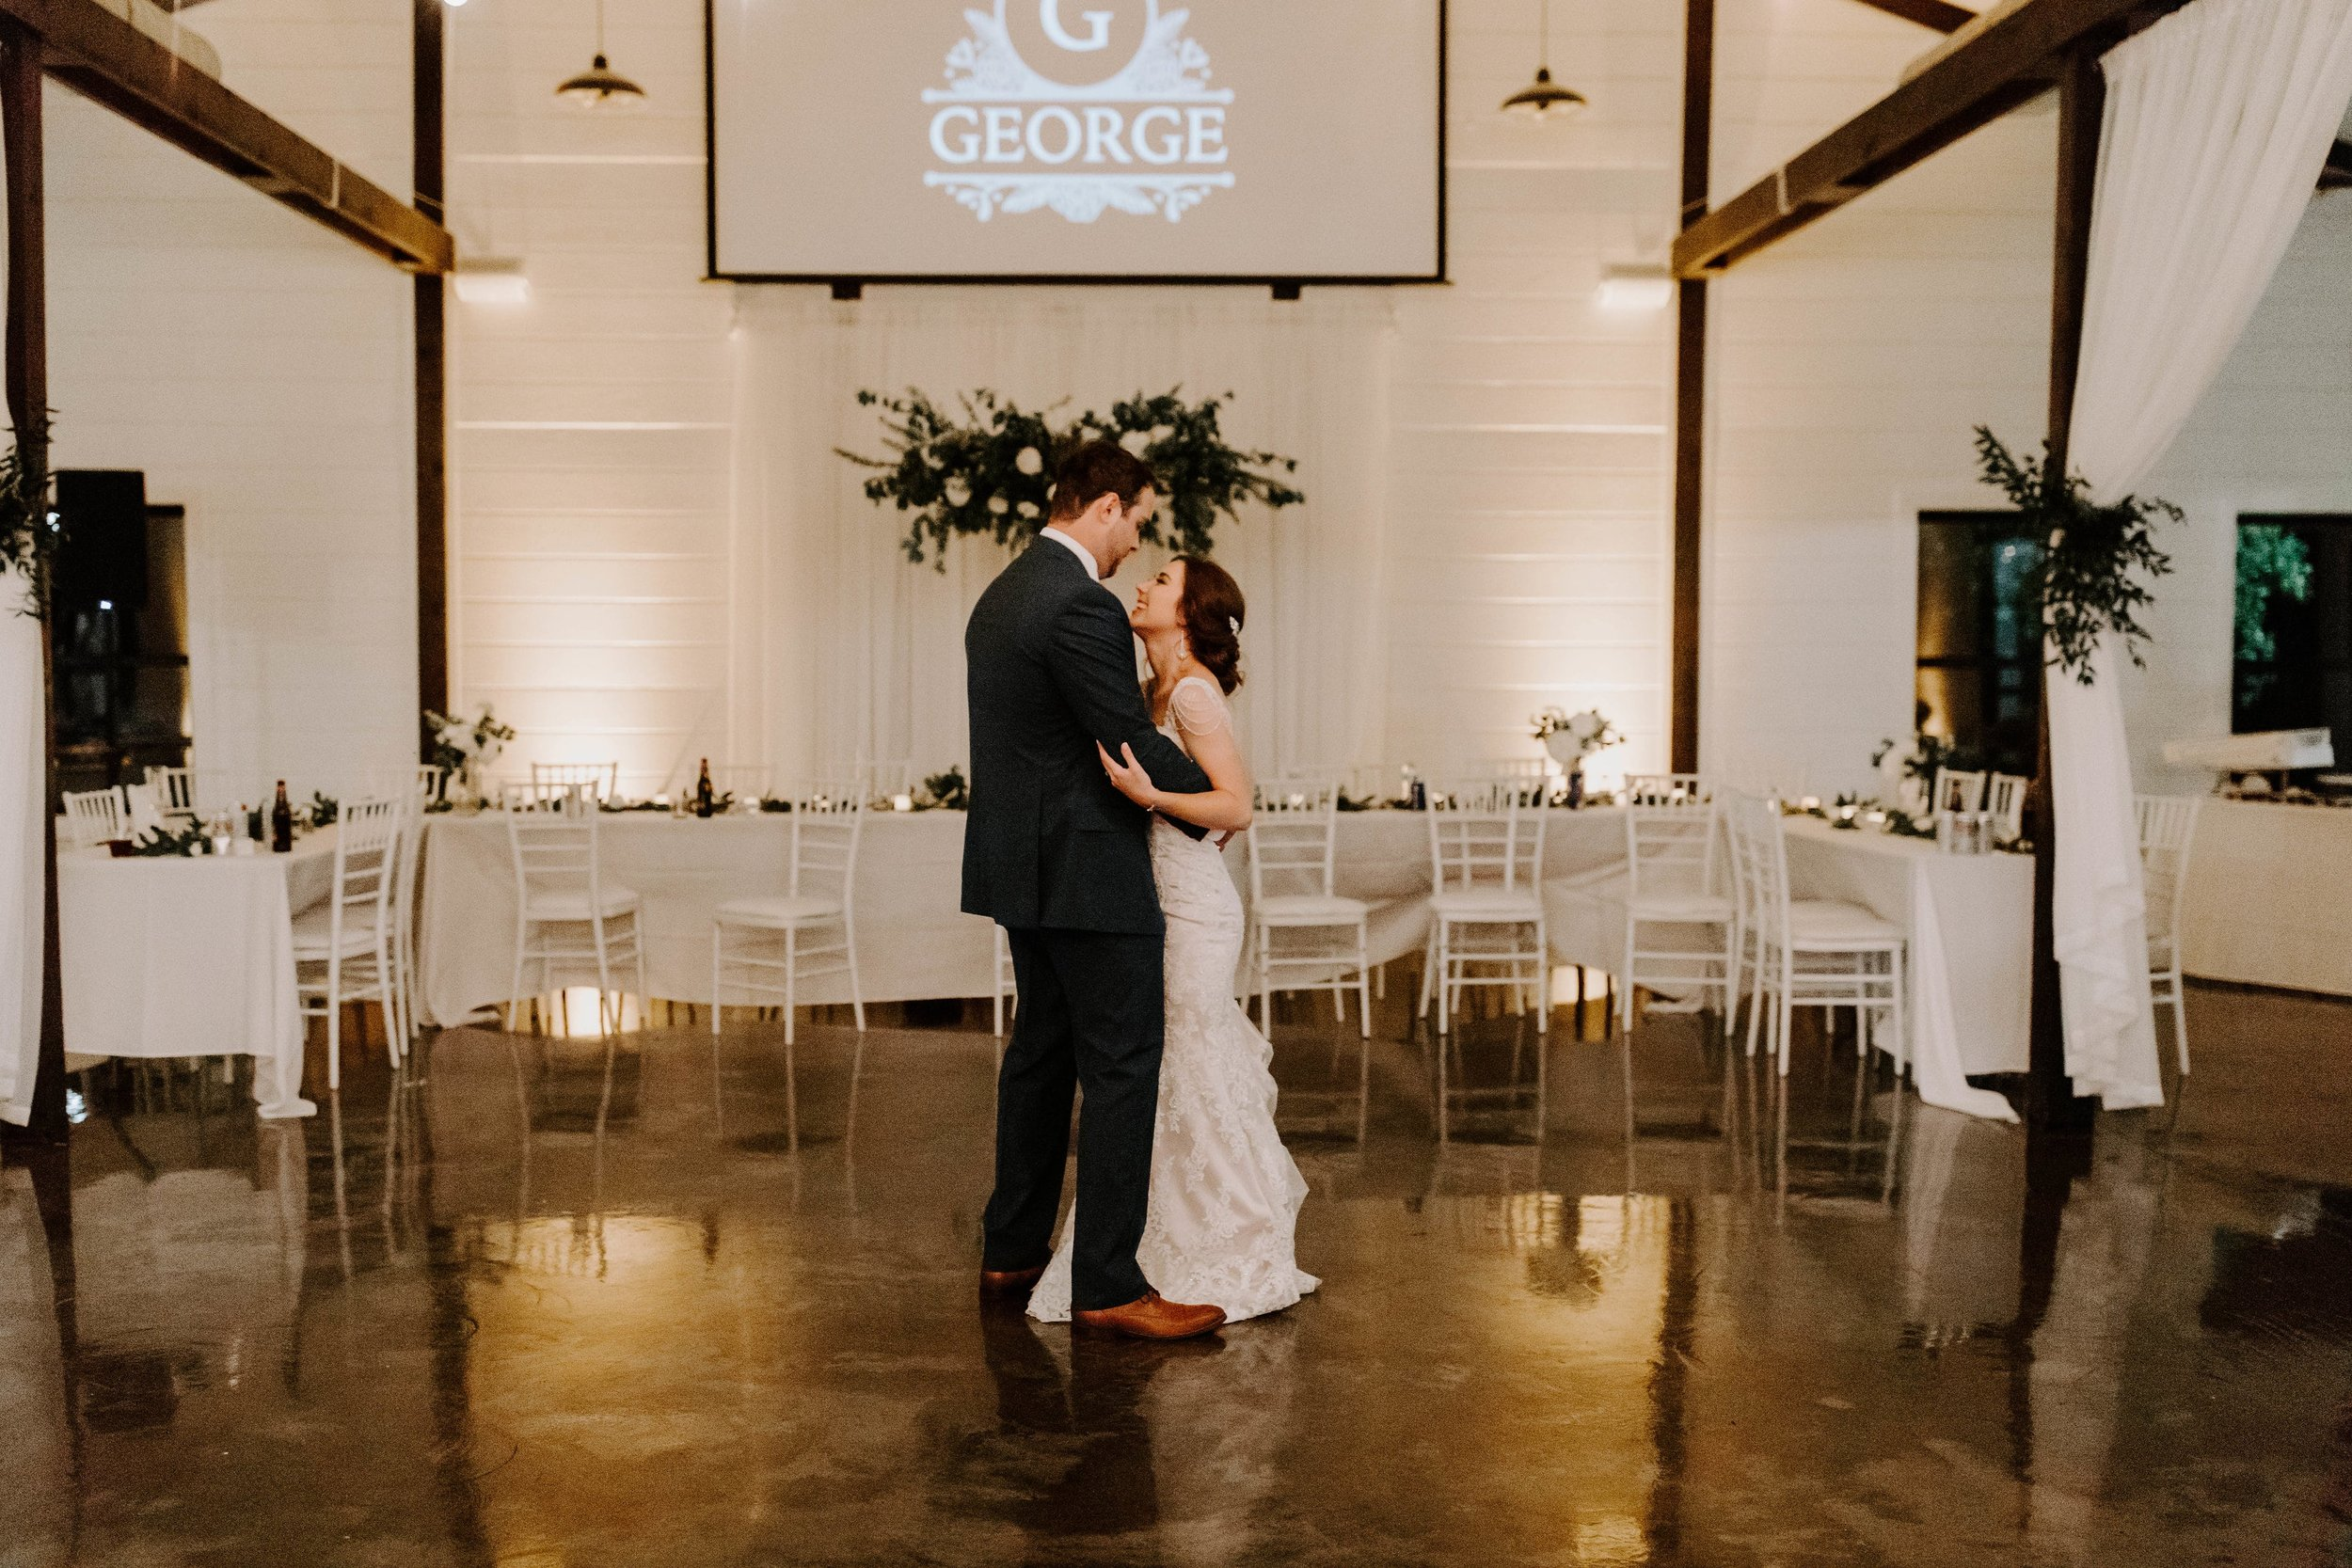 couples last dance tulsa wedding venue-min.jpg